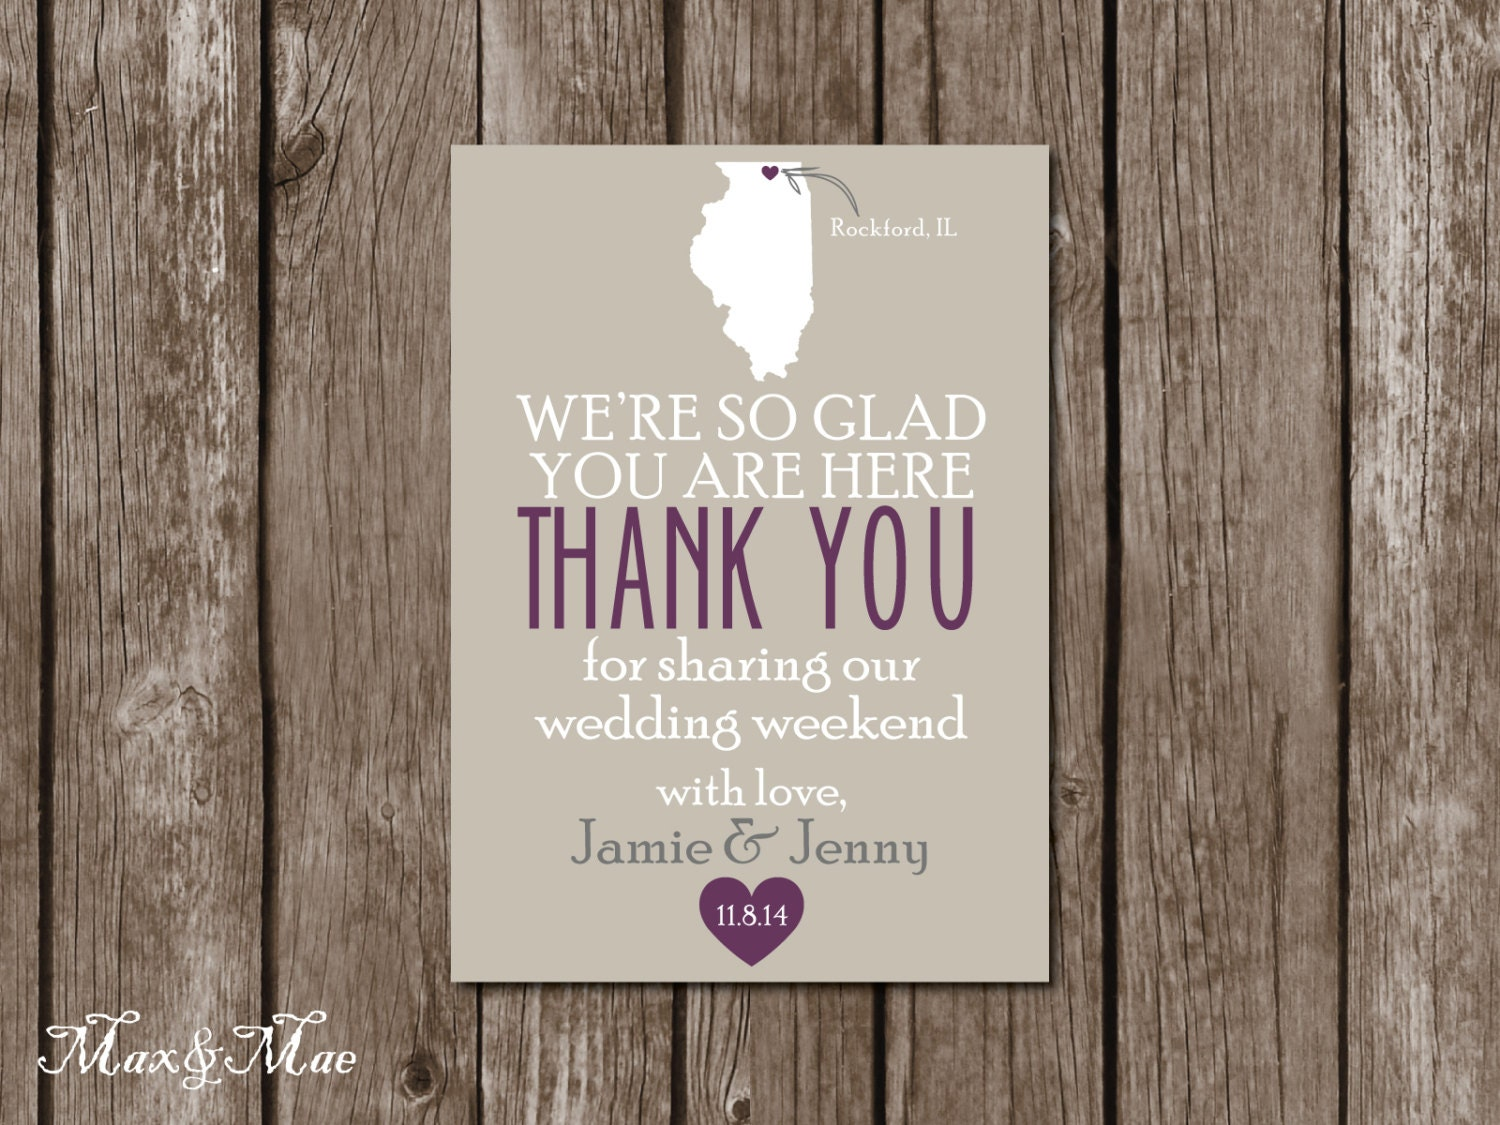 Thank You Letter For Wedding Guests: Wedding Thank You Card Wedding Card For Hotel Guests Wedding